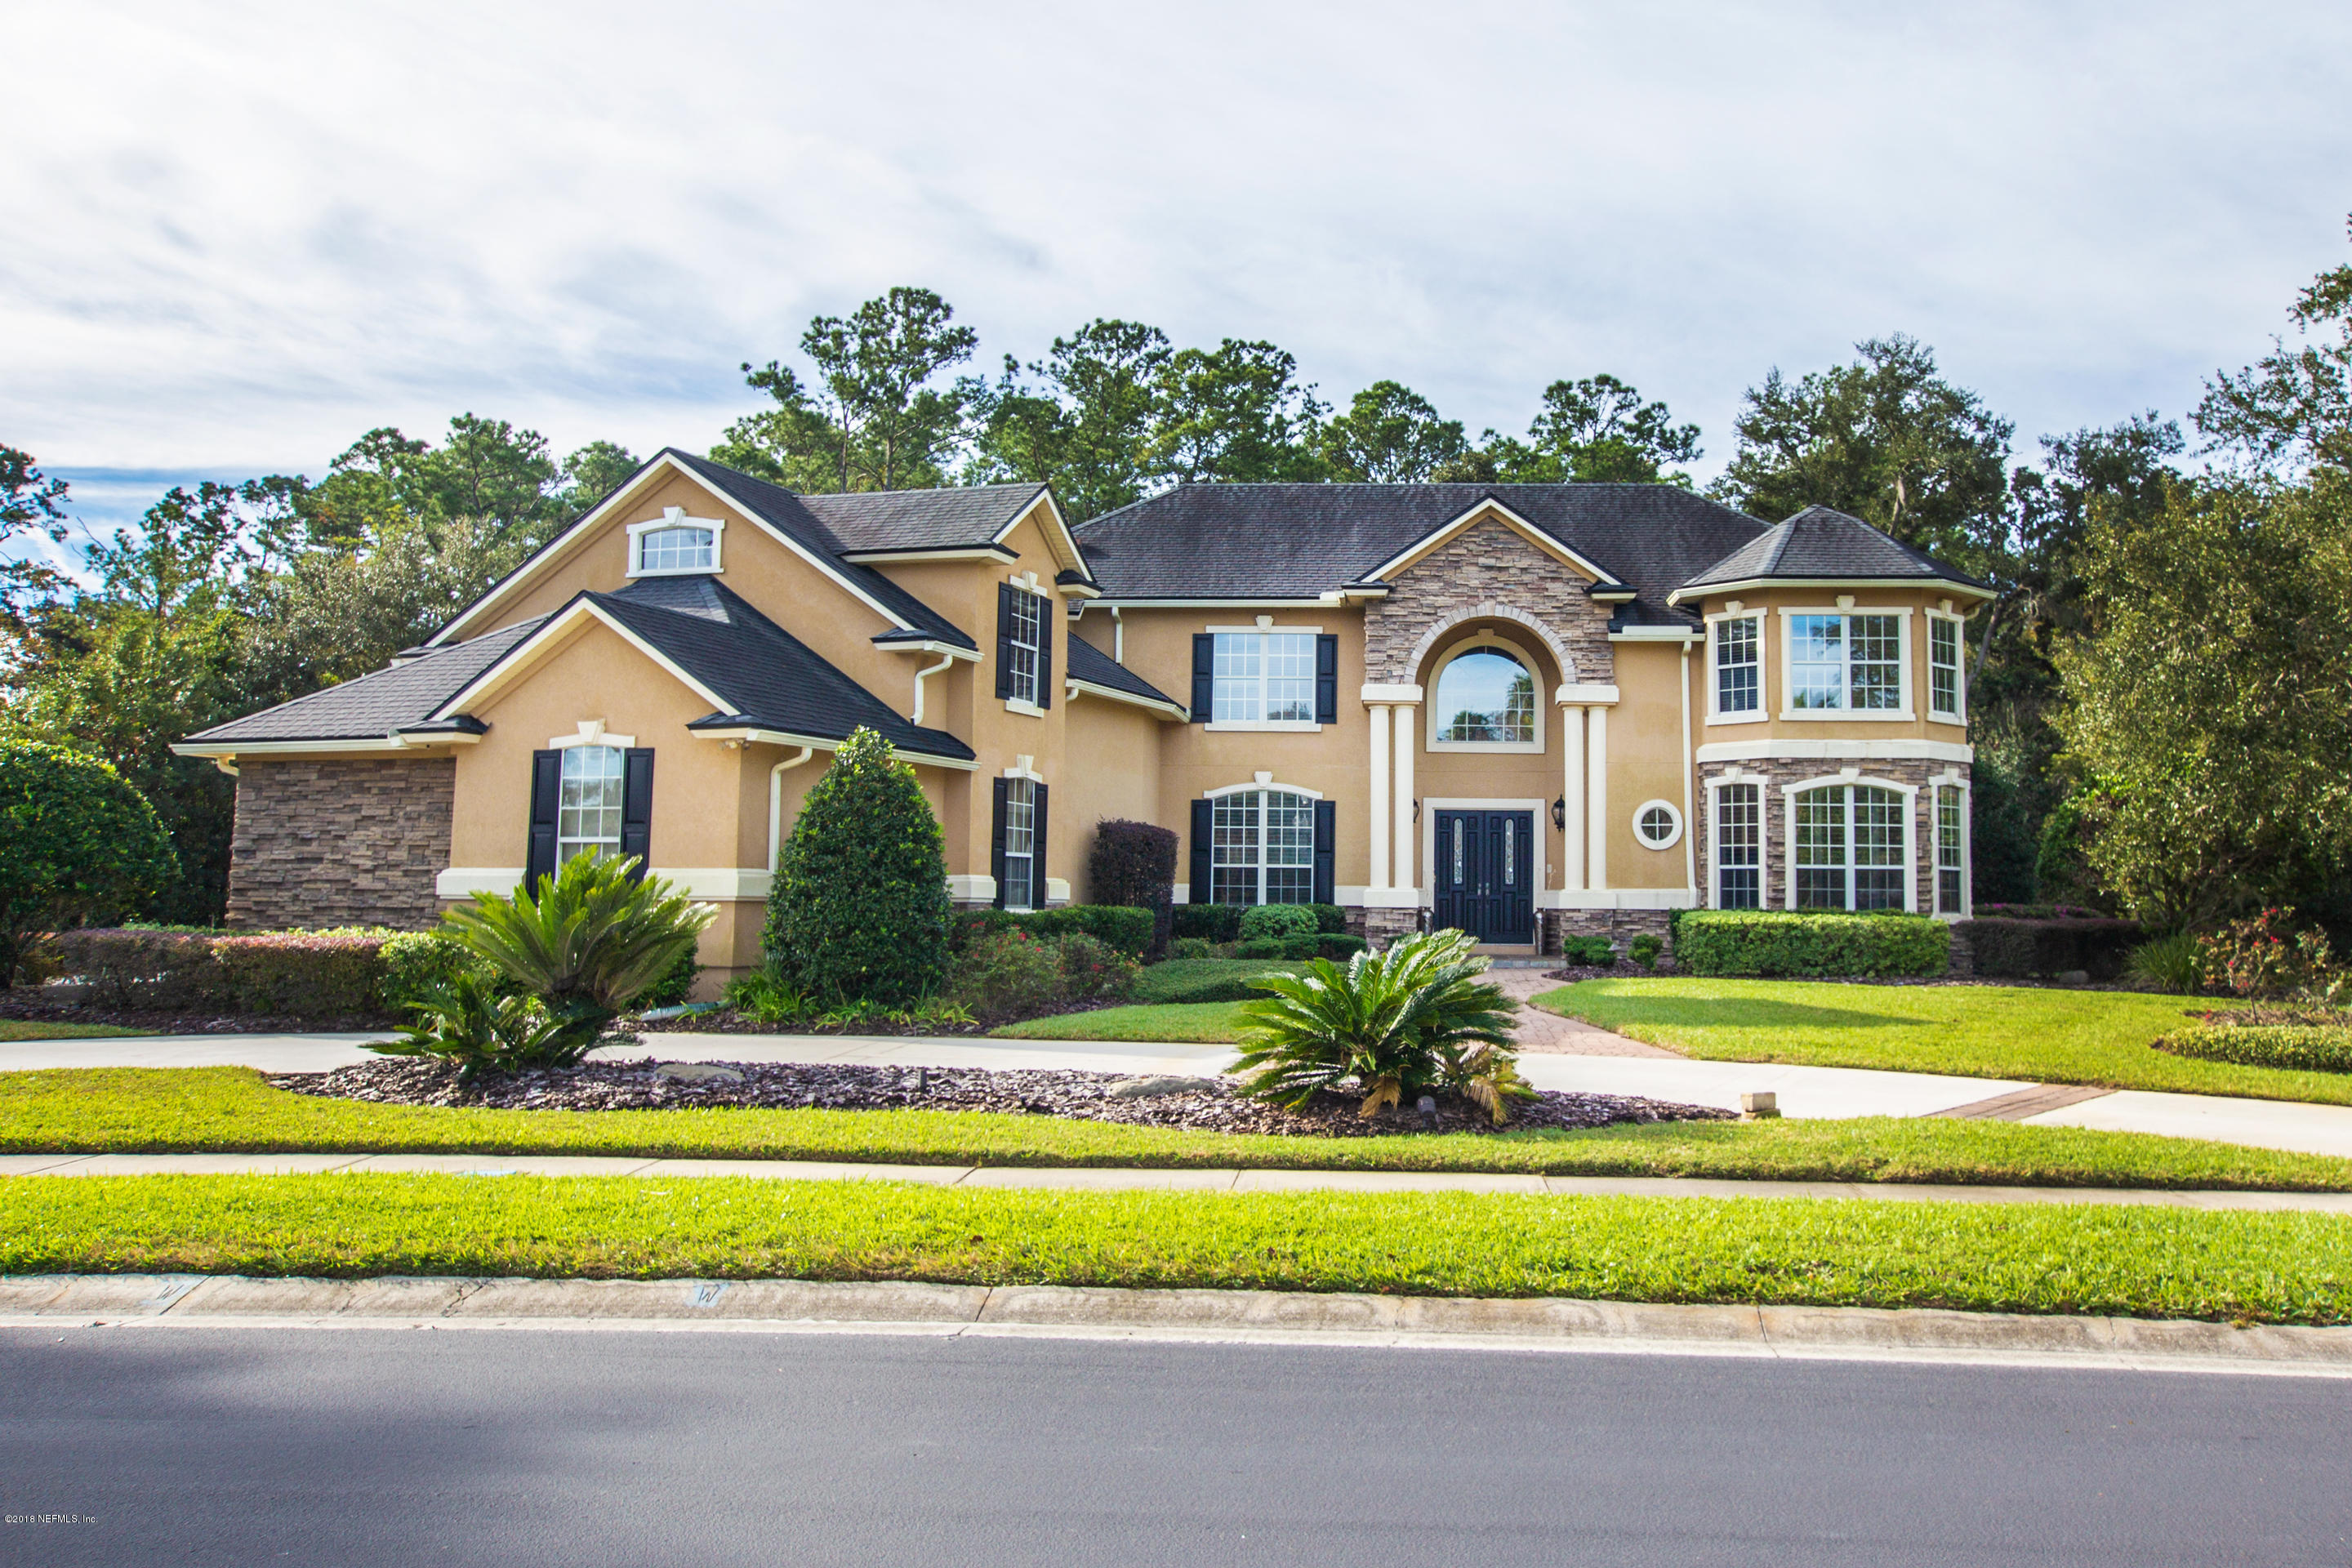 328 CLEARWATER, PONTE VEDRA BEACH, FLORIDA 32082, 5 Bedrooms Bedrooms, ,5 BathroomsBathrooms,Residential - single family,For sale,CLEARWATER,969034